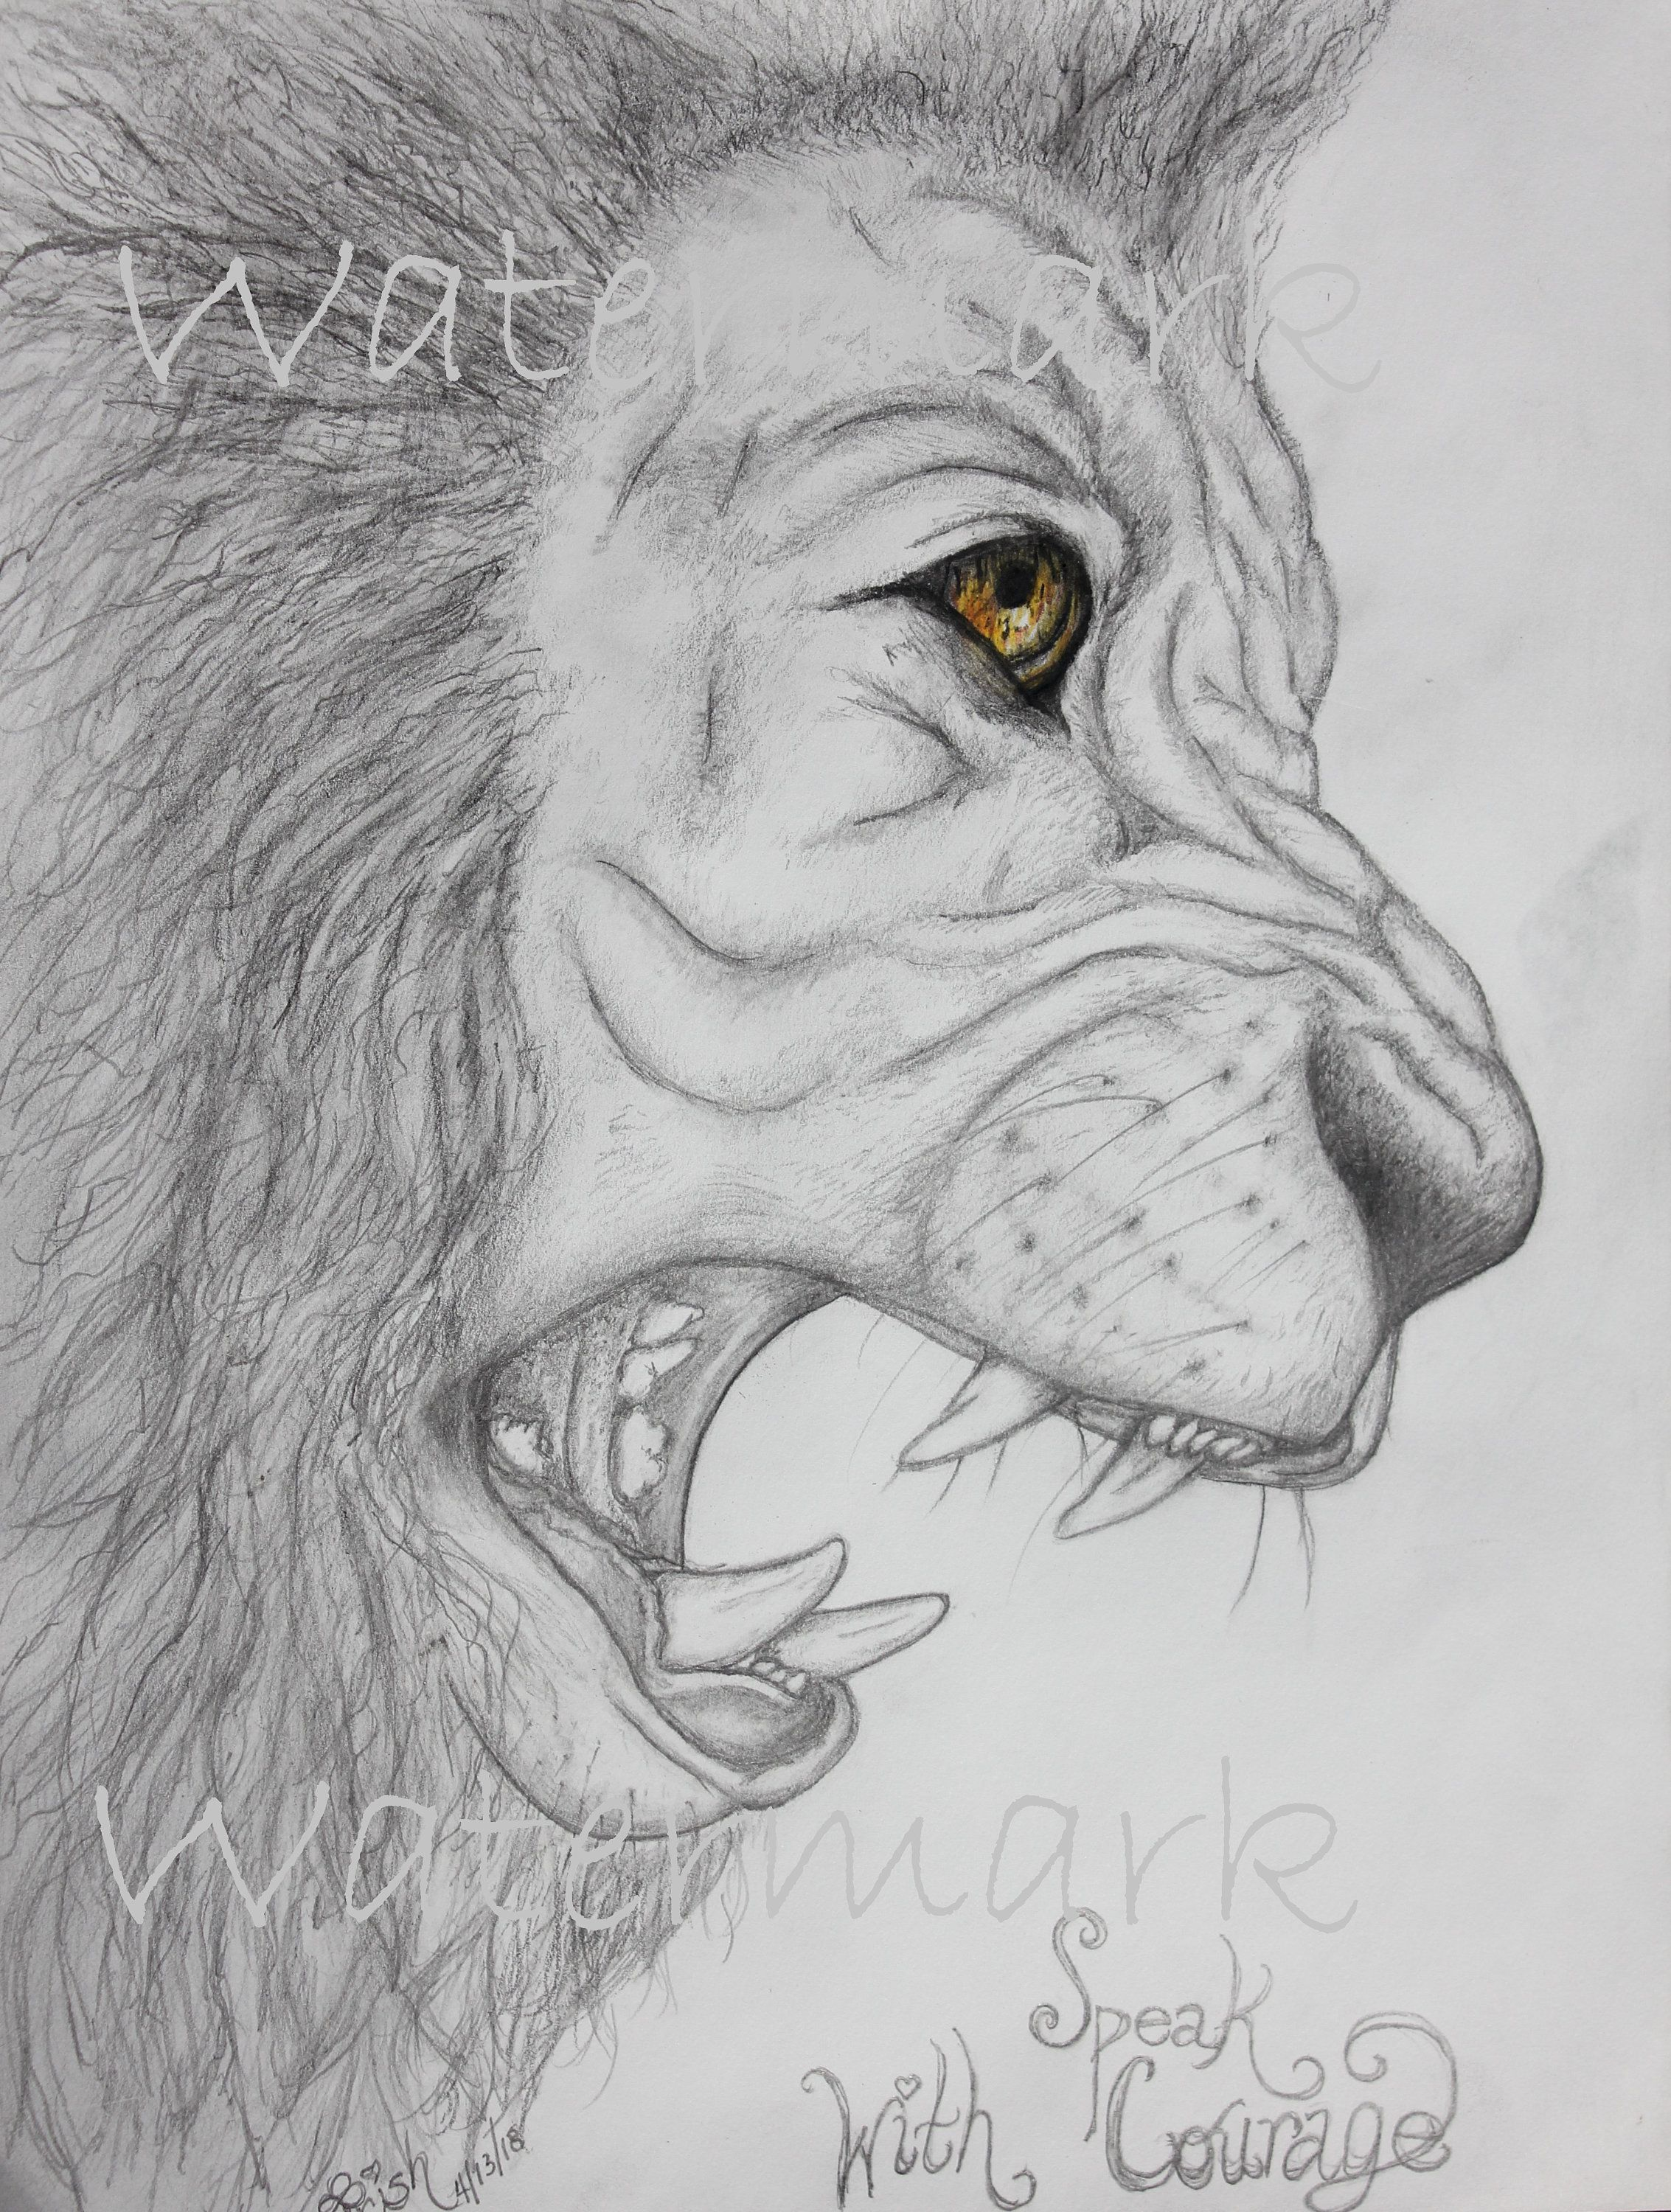 Sketch eyes speak with courage beautiful detail lion print courageous lion motivational lion art lion eyes fierce lion sketch lion courage drawing